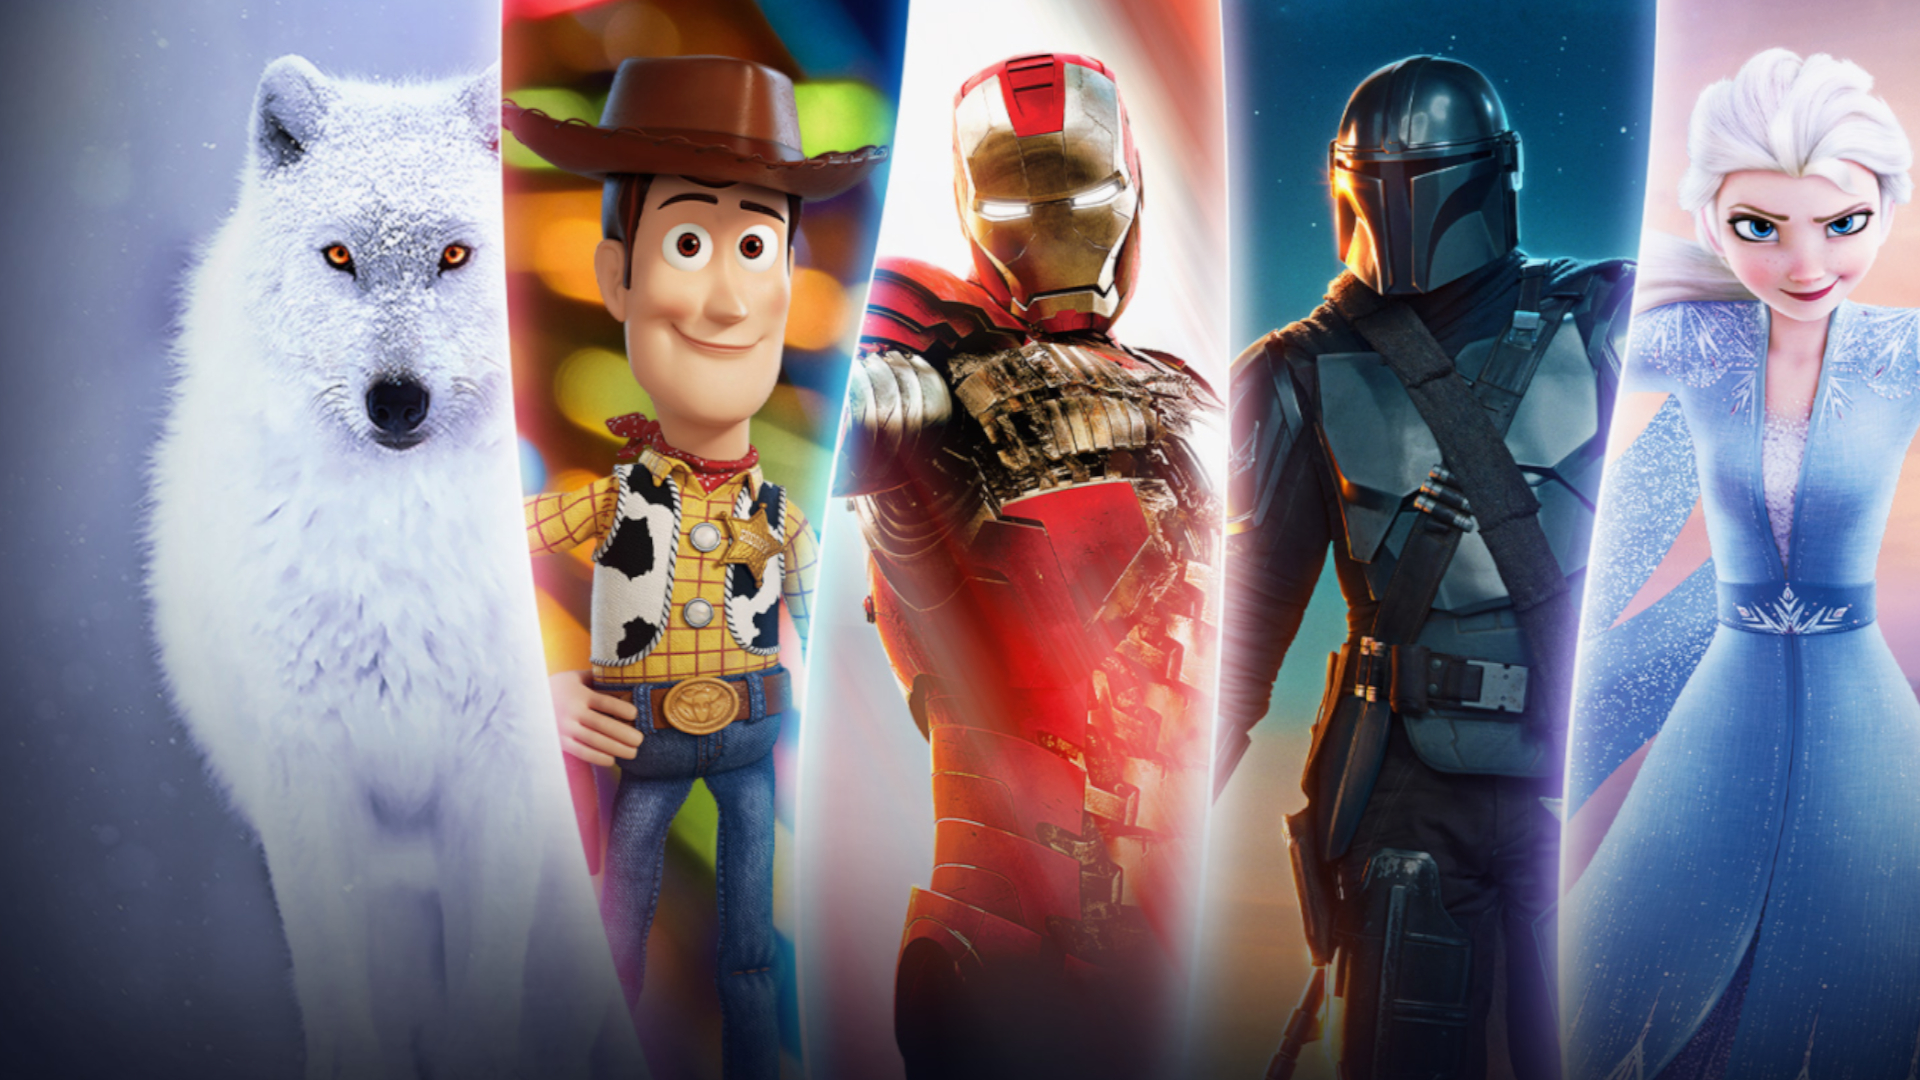 The best Disney Plus bundles: Hulu, ESPN+, Star, and global offers compared